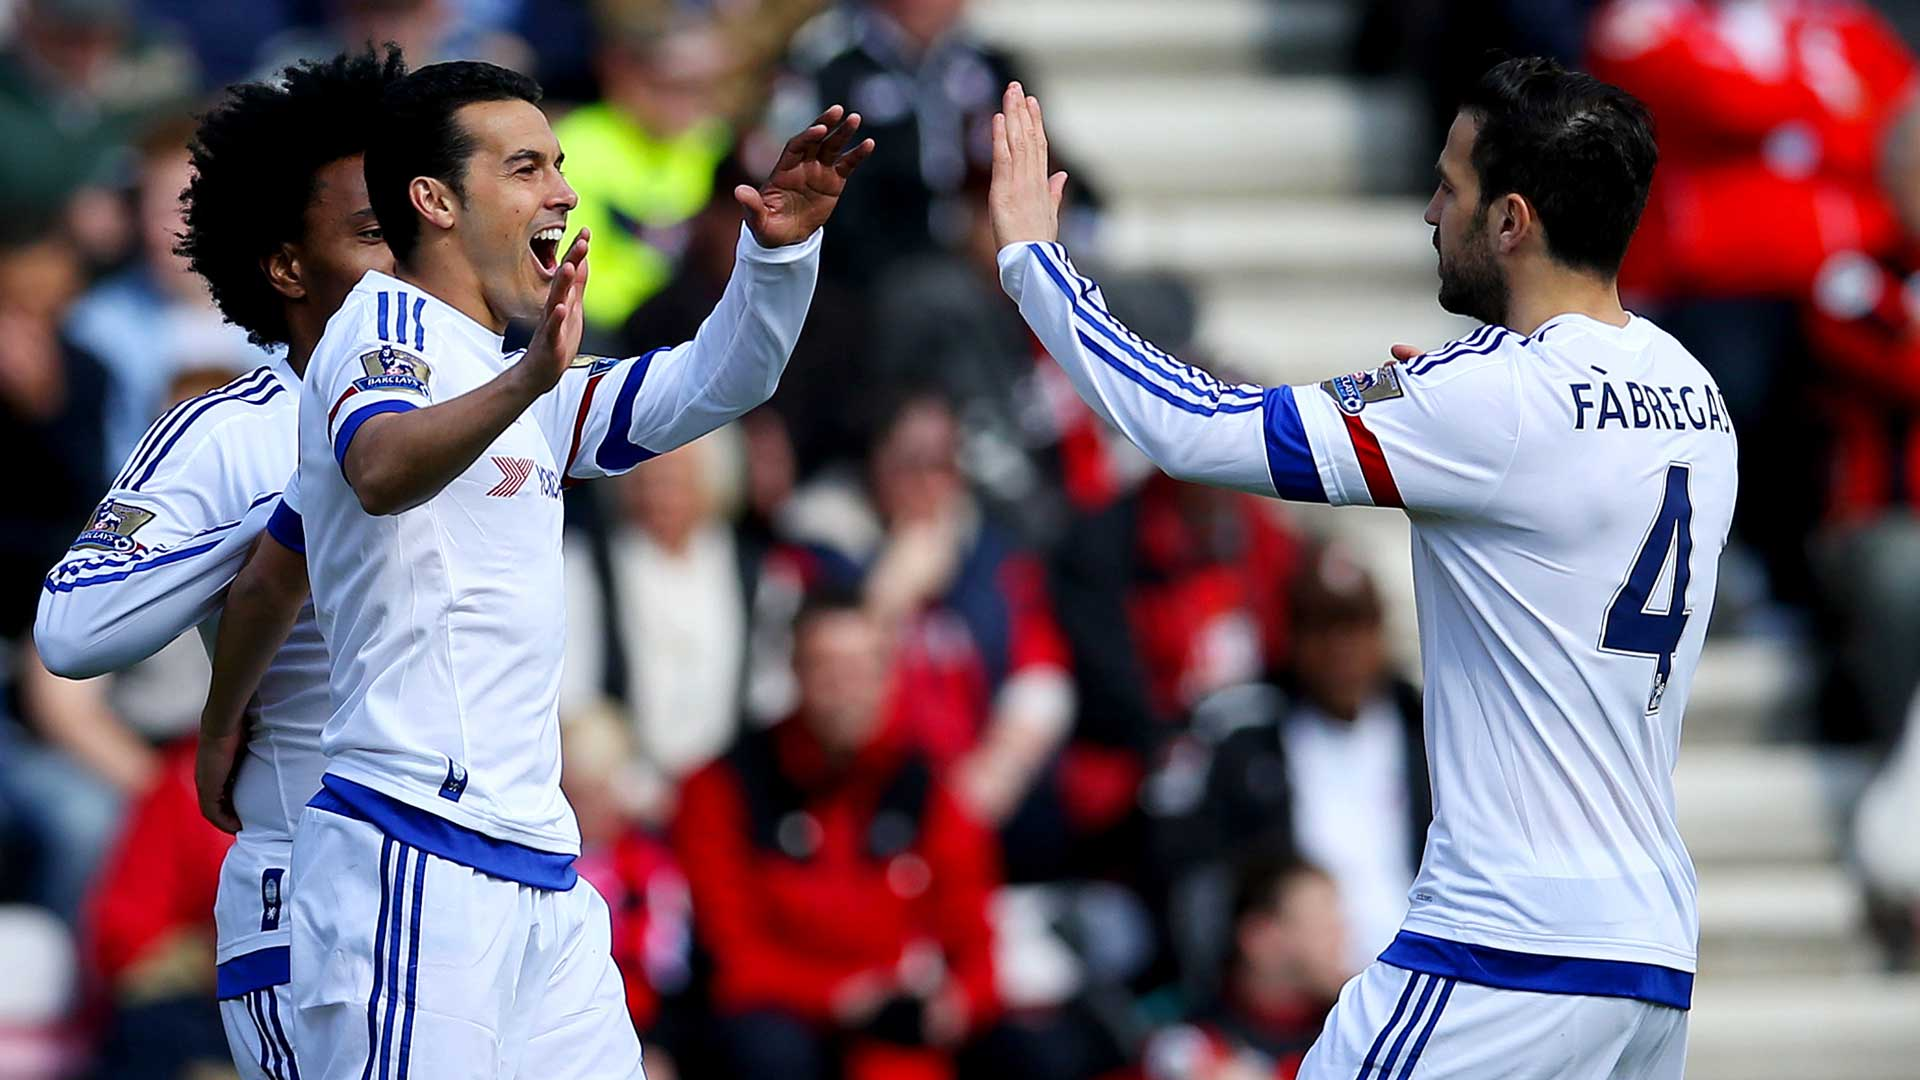 Pedro shows Fabregas how to impress Conte at Chelsea